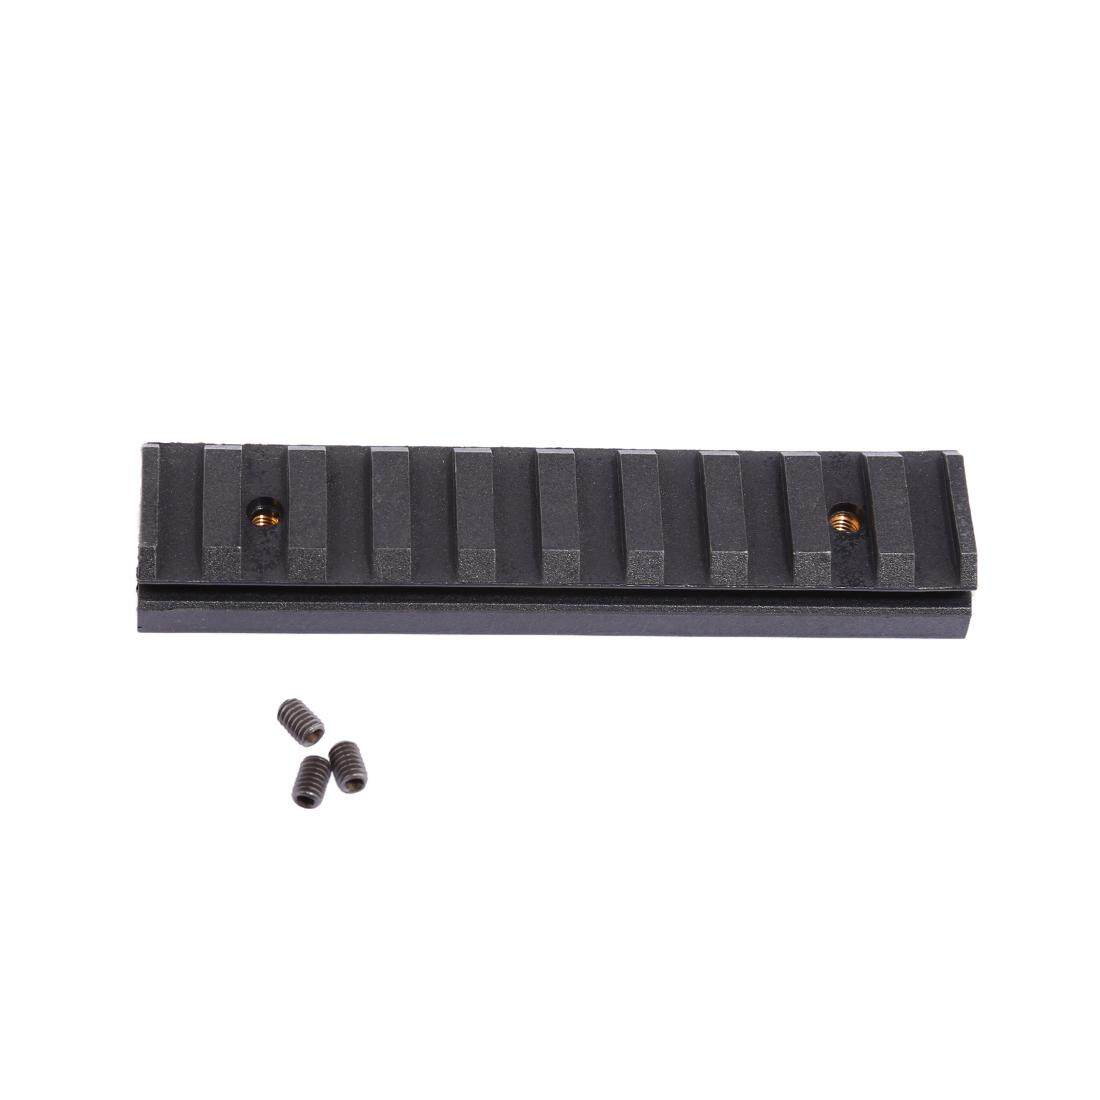 ... Di Indonesia Source · 360WISH Worker 10CM Nylon Grooved Top Rail Mount Kit for Nerf with Track Black